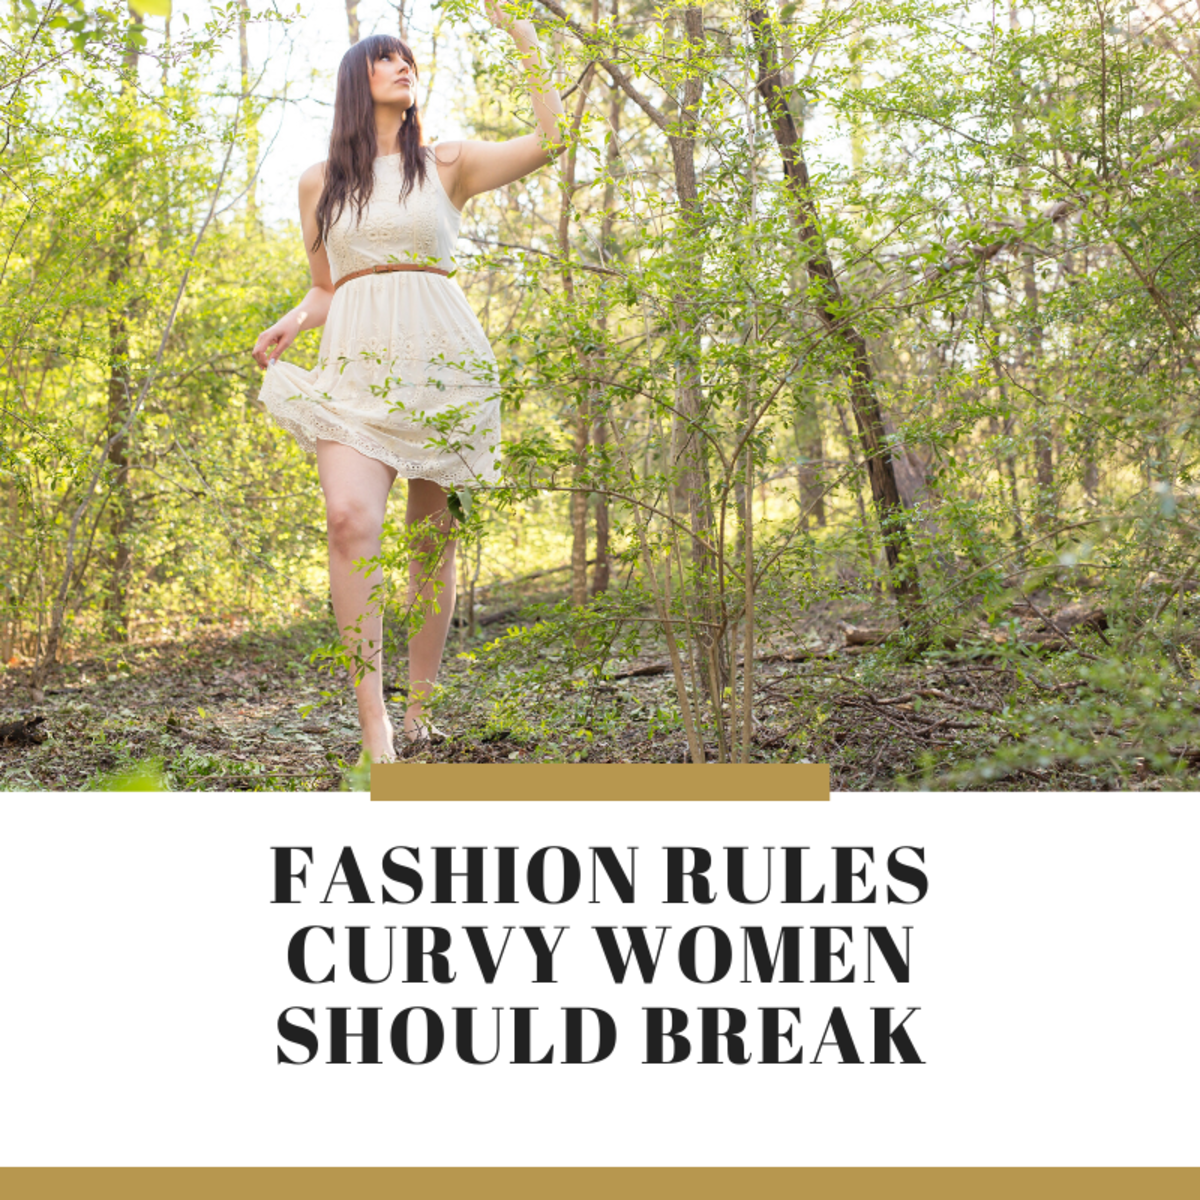 Don't let these fashion rules hold you back!